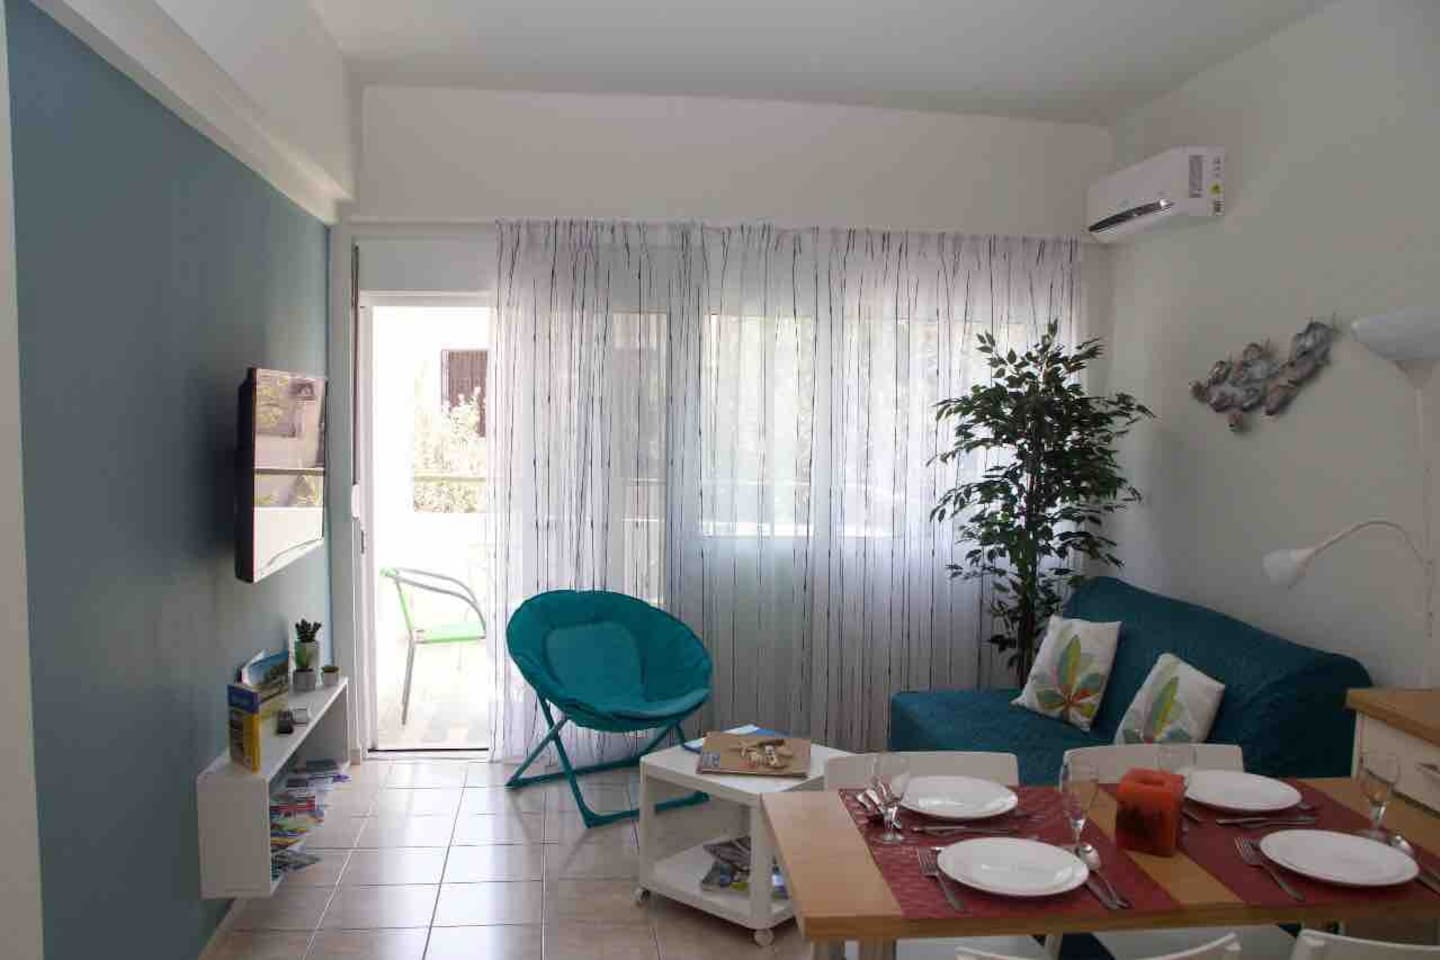 Sitting room of this fully air conditioned one bedroom apartment with open kitchen.  The large window leads  to one of the balconies.